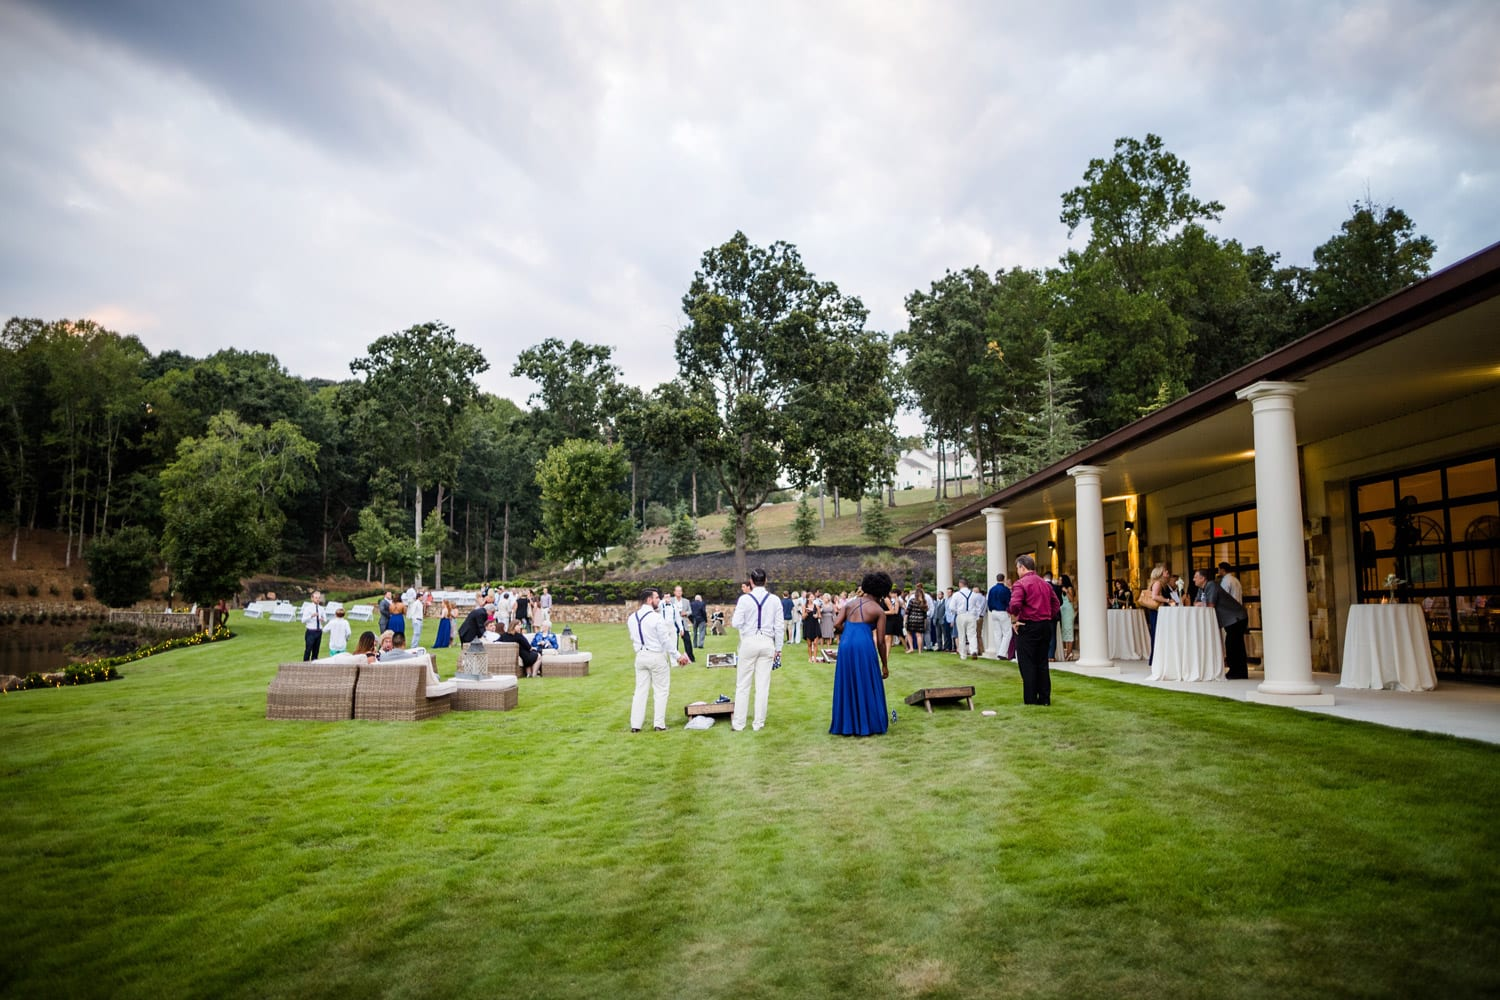 Wedding guests play outside on grass